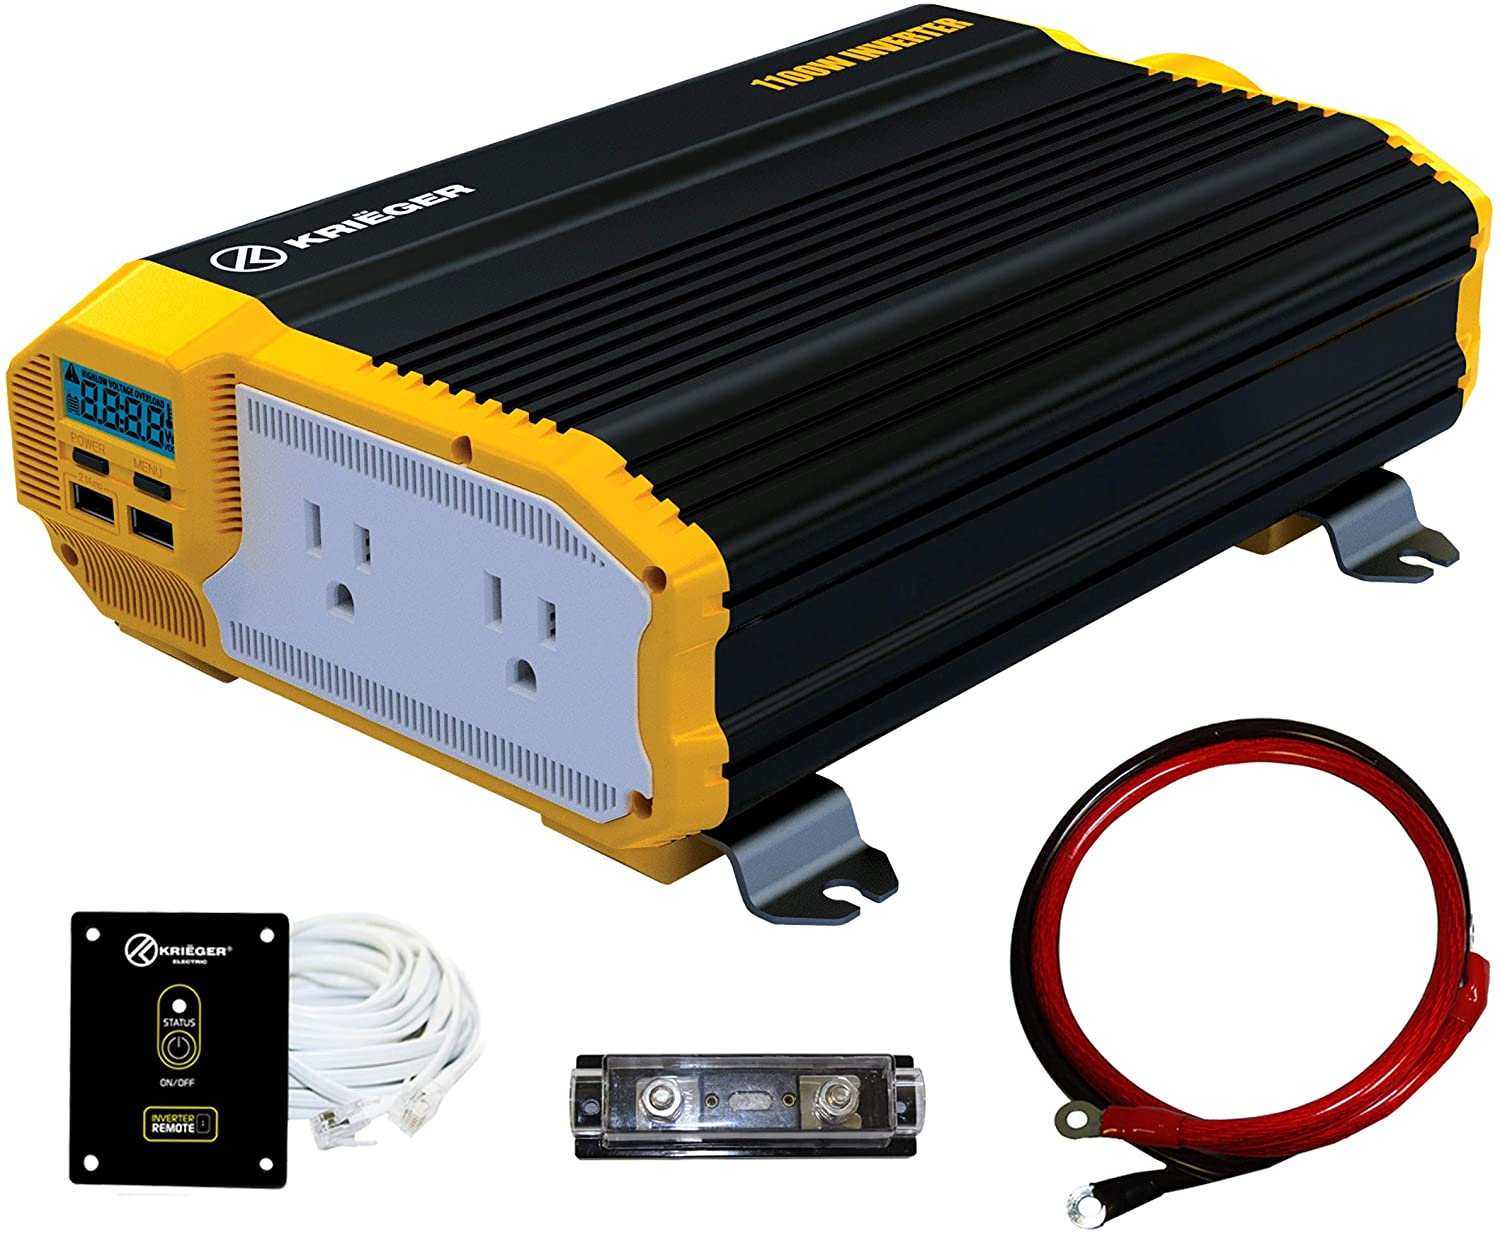 KRIEGER 1100 Watt 12V Power Inverter Dual 110V AC Outlets, Installation Kit Included, Automotive Back Up Power Supply For Blenders, Vacuums, Power Tools MET Approved According to UL and CSA.